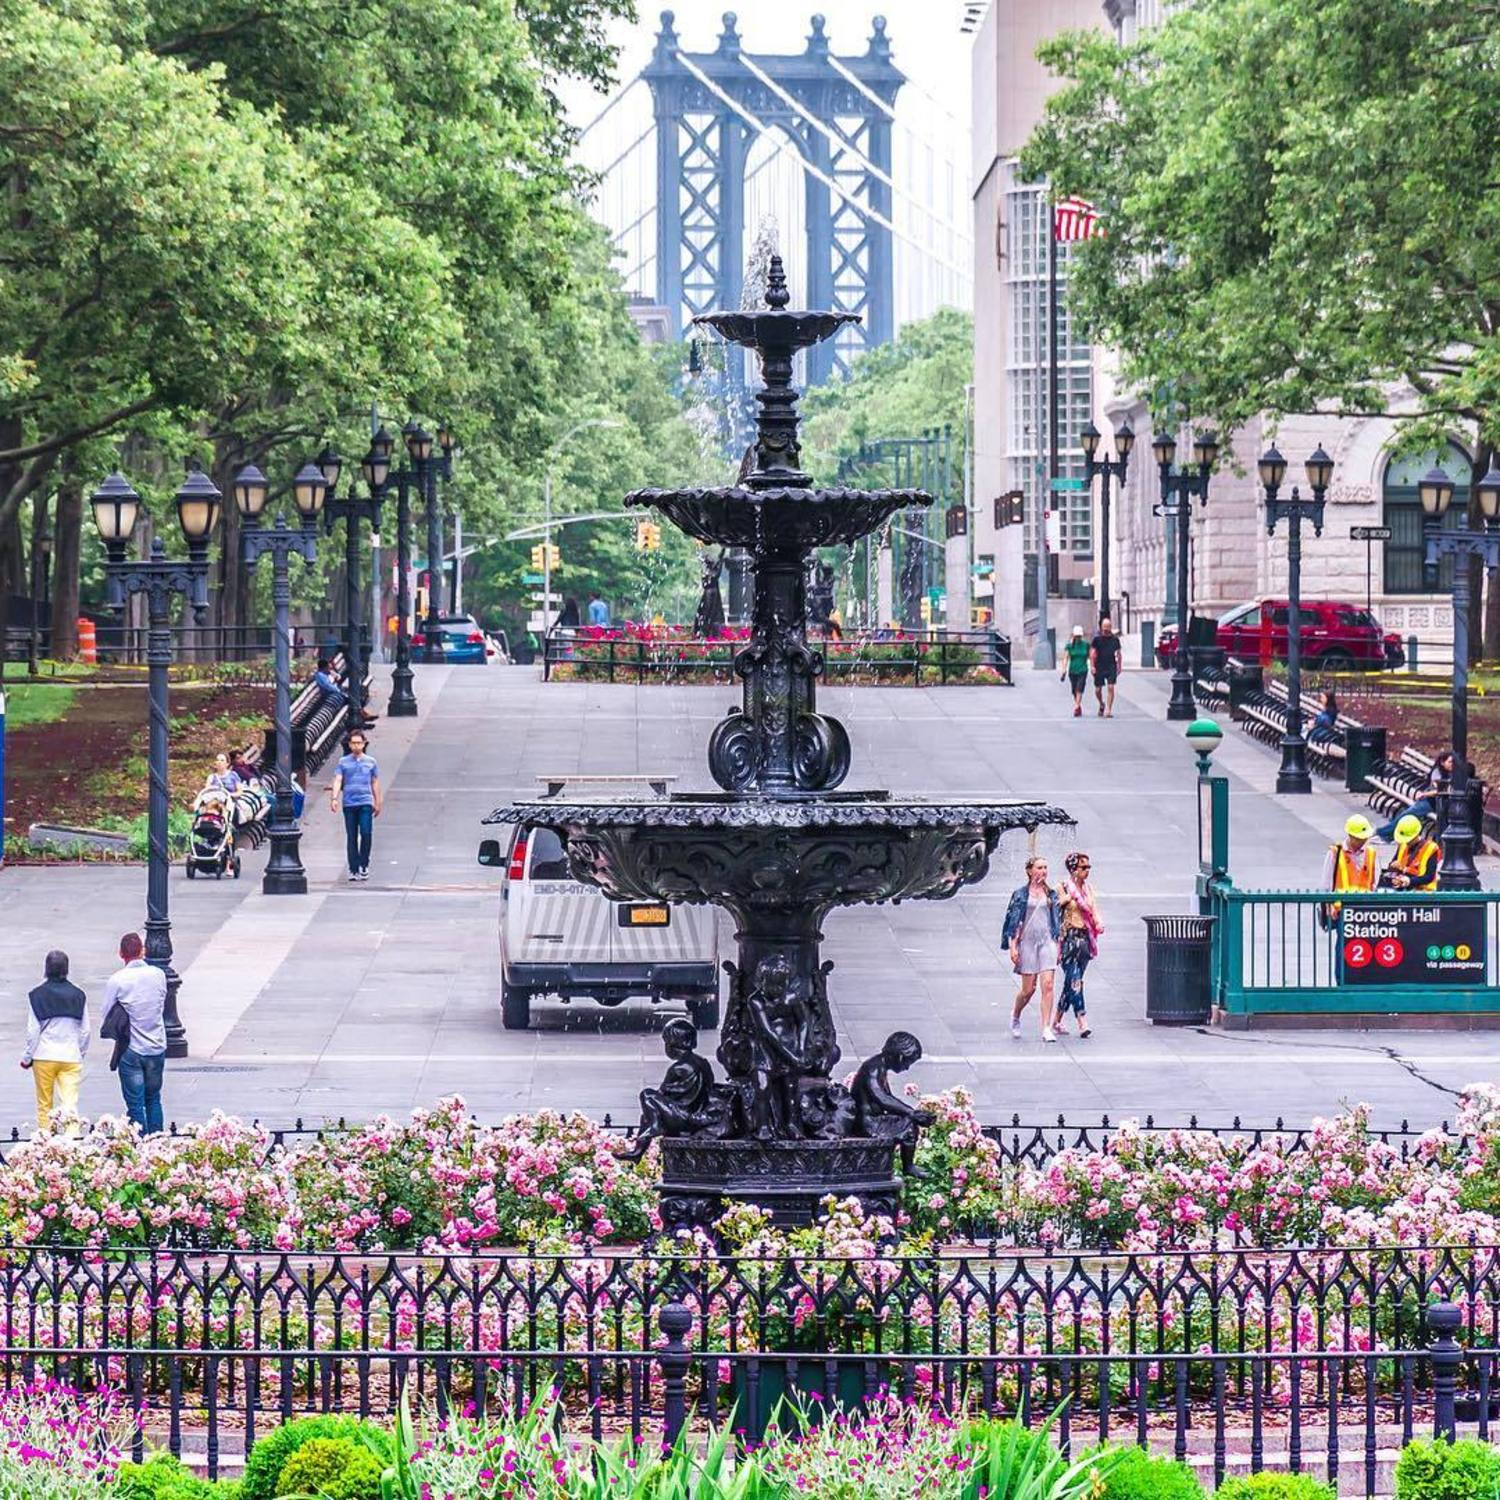 Columbus Park in downtown Brooklyn. Named after Christopher Columbus, the park is one of the the city's first major urban parks that continues to be a gathering place for people of different cultures and ages, and hosts a wide variety of events and assemblies. Behind the fountain is part of the Manhattan Bridge. Downtown Brooklyn, New York City.